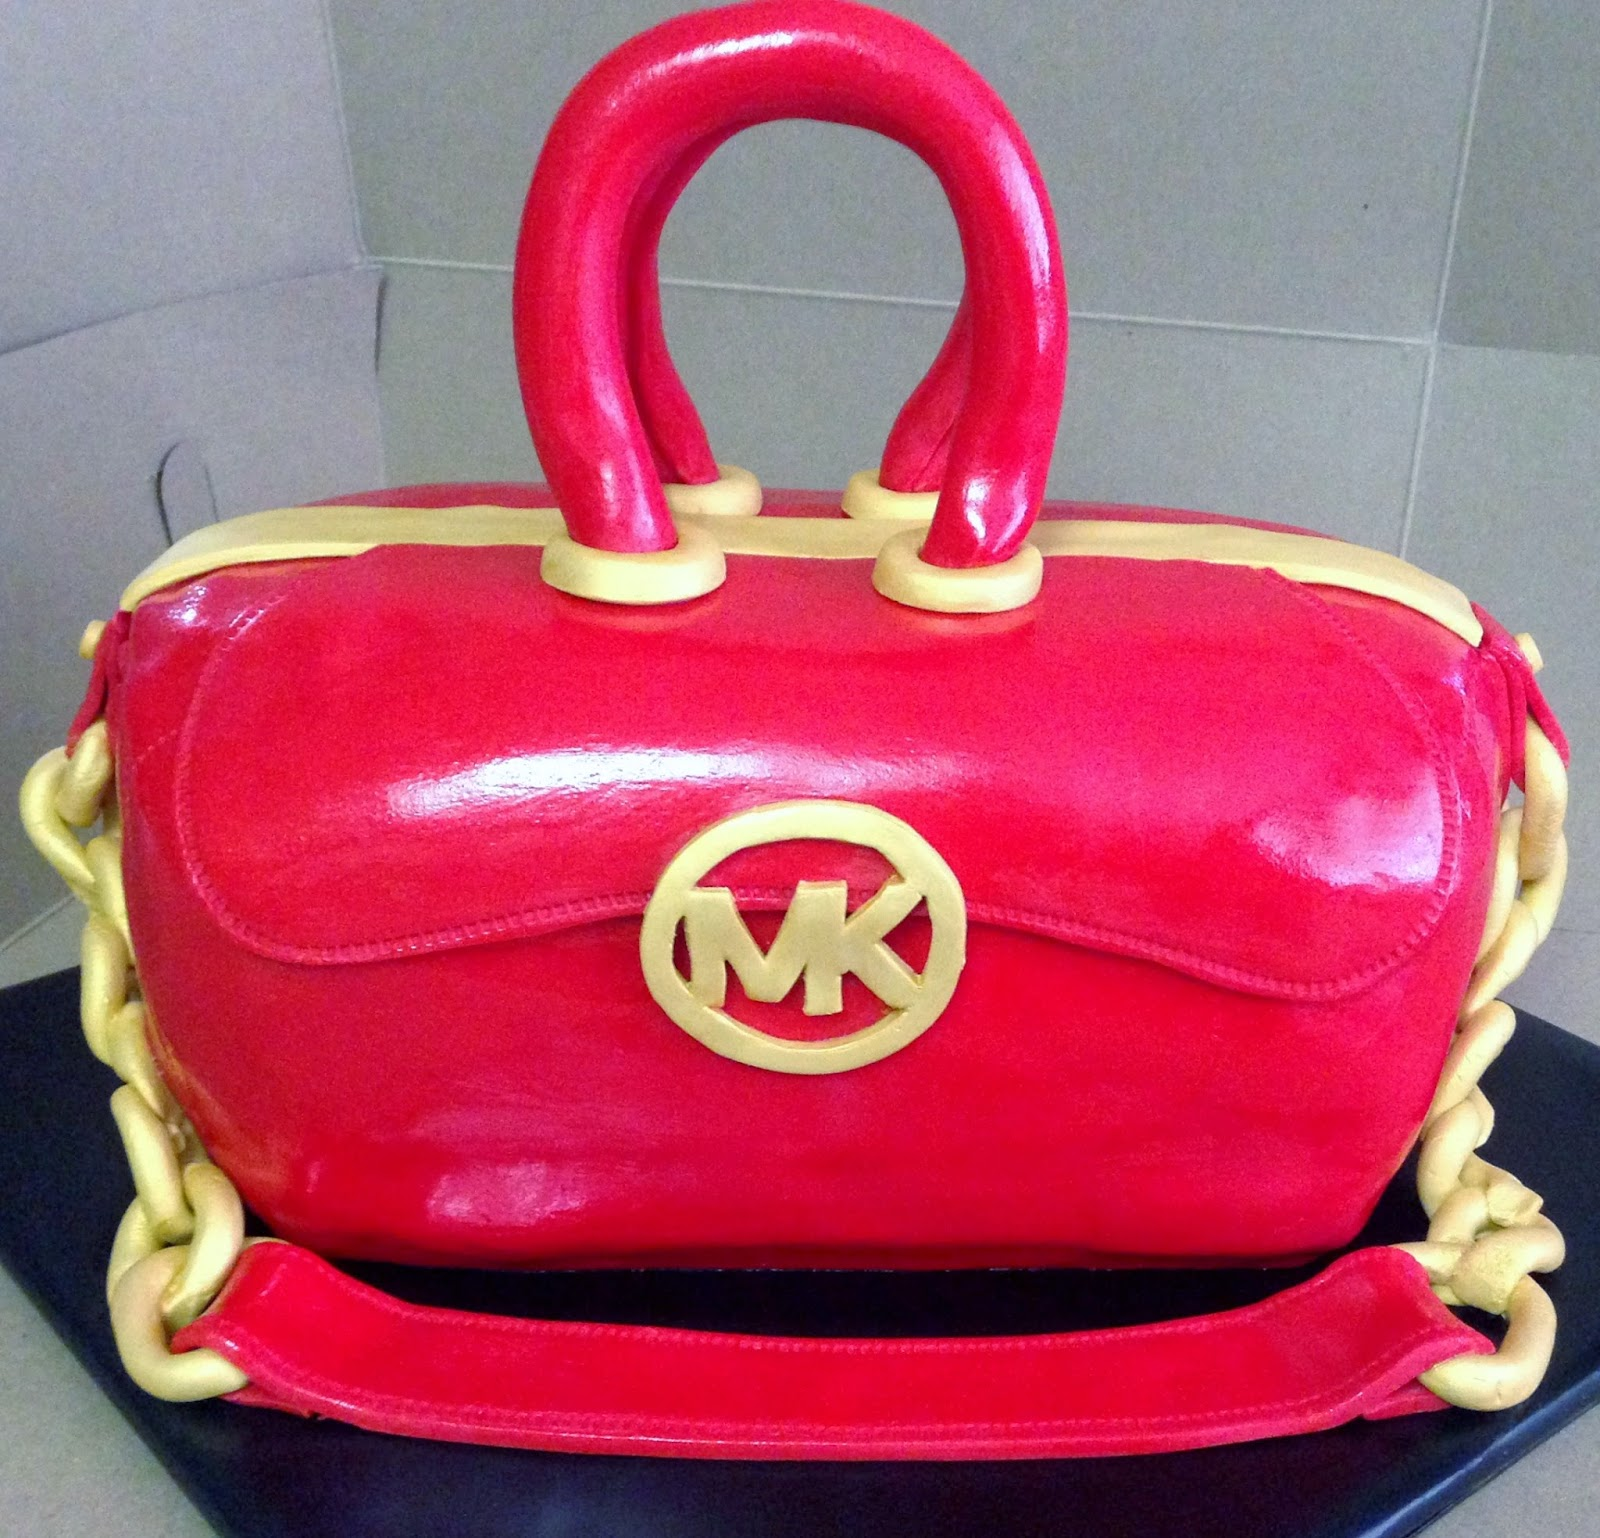 Cakes By Mindy Michael Kors Purse Cake 10 Quot